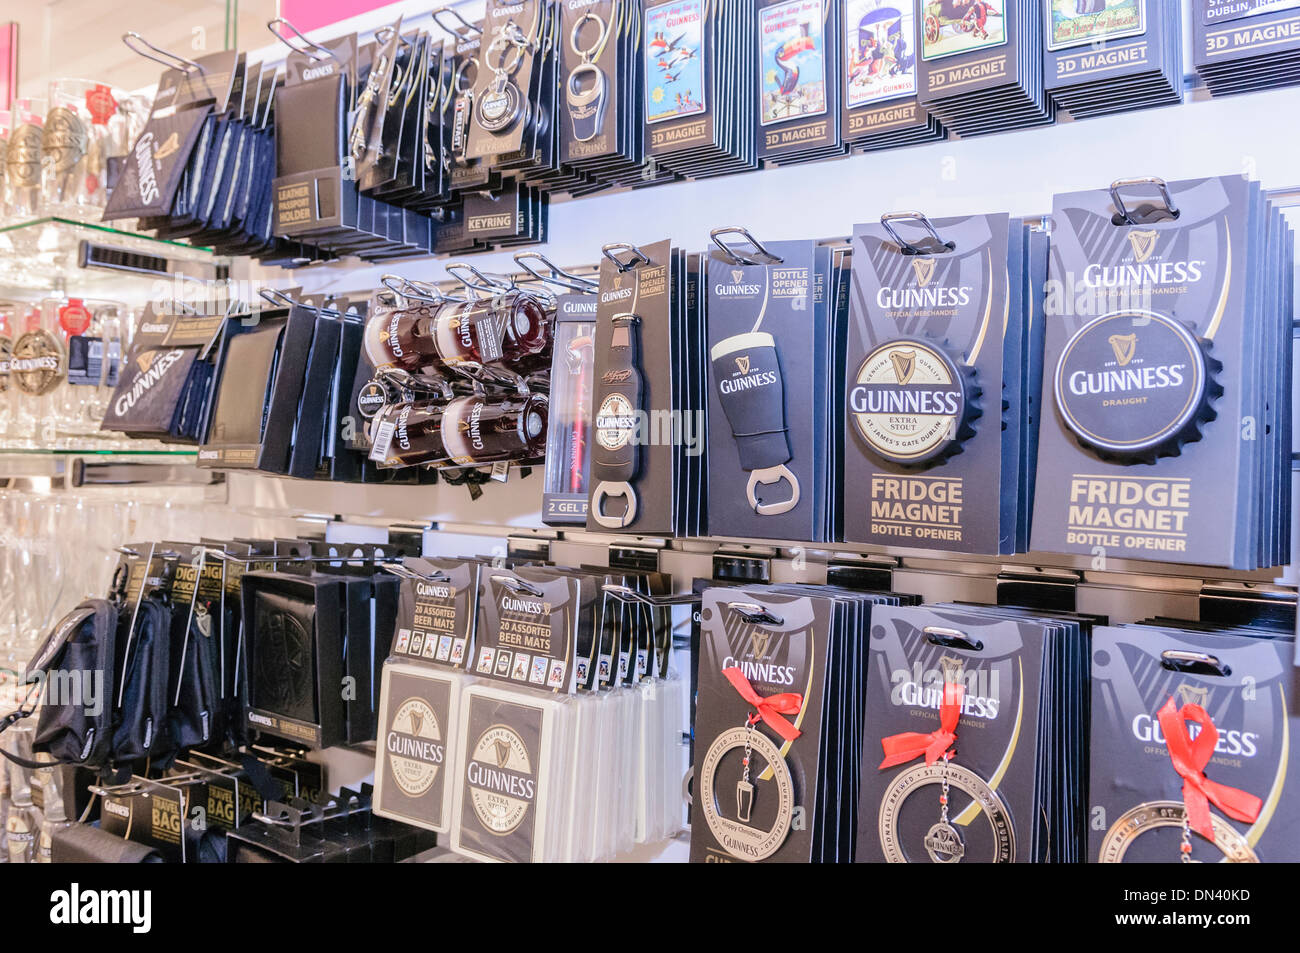 Guinness branded souvenirs on sale in an Irish tourist information centre - Stock Image